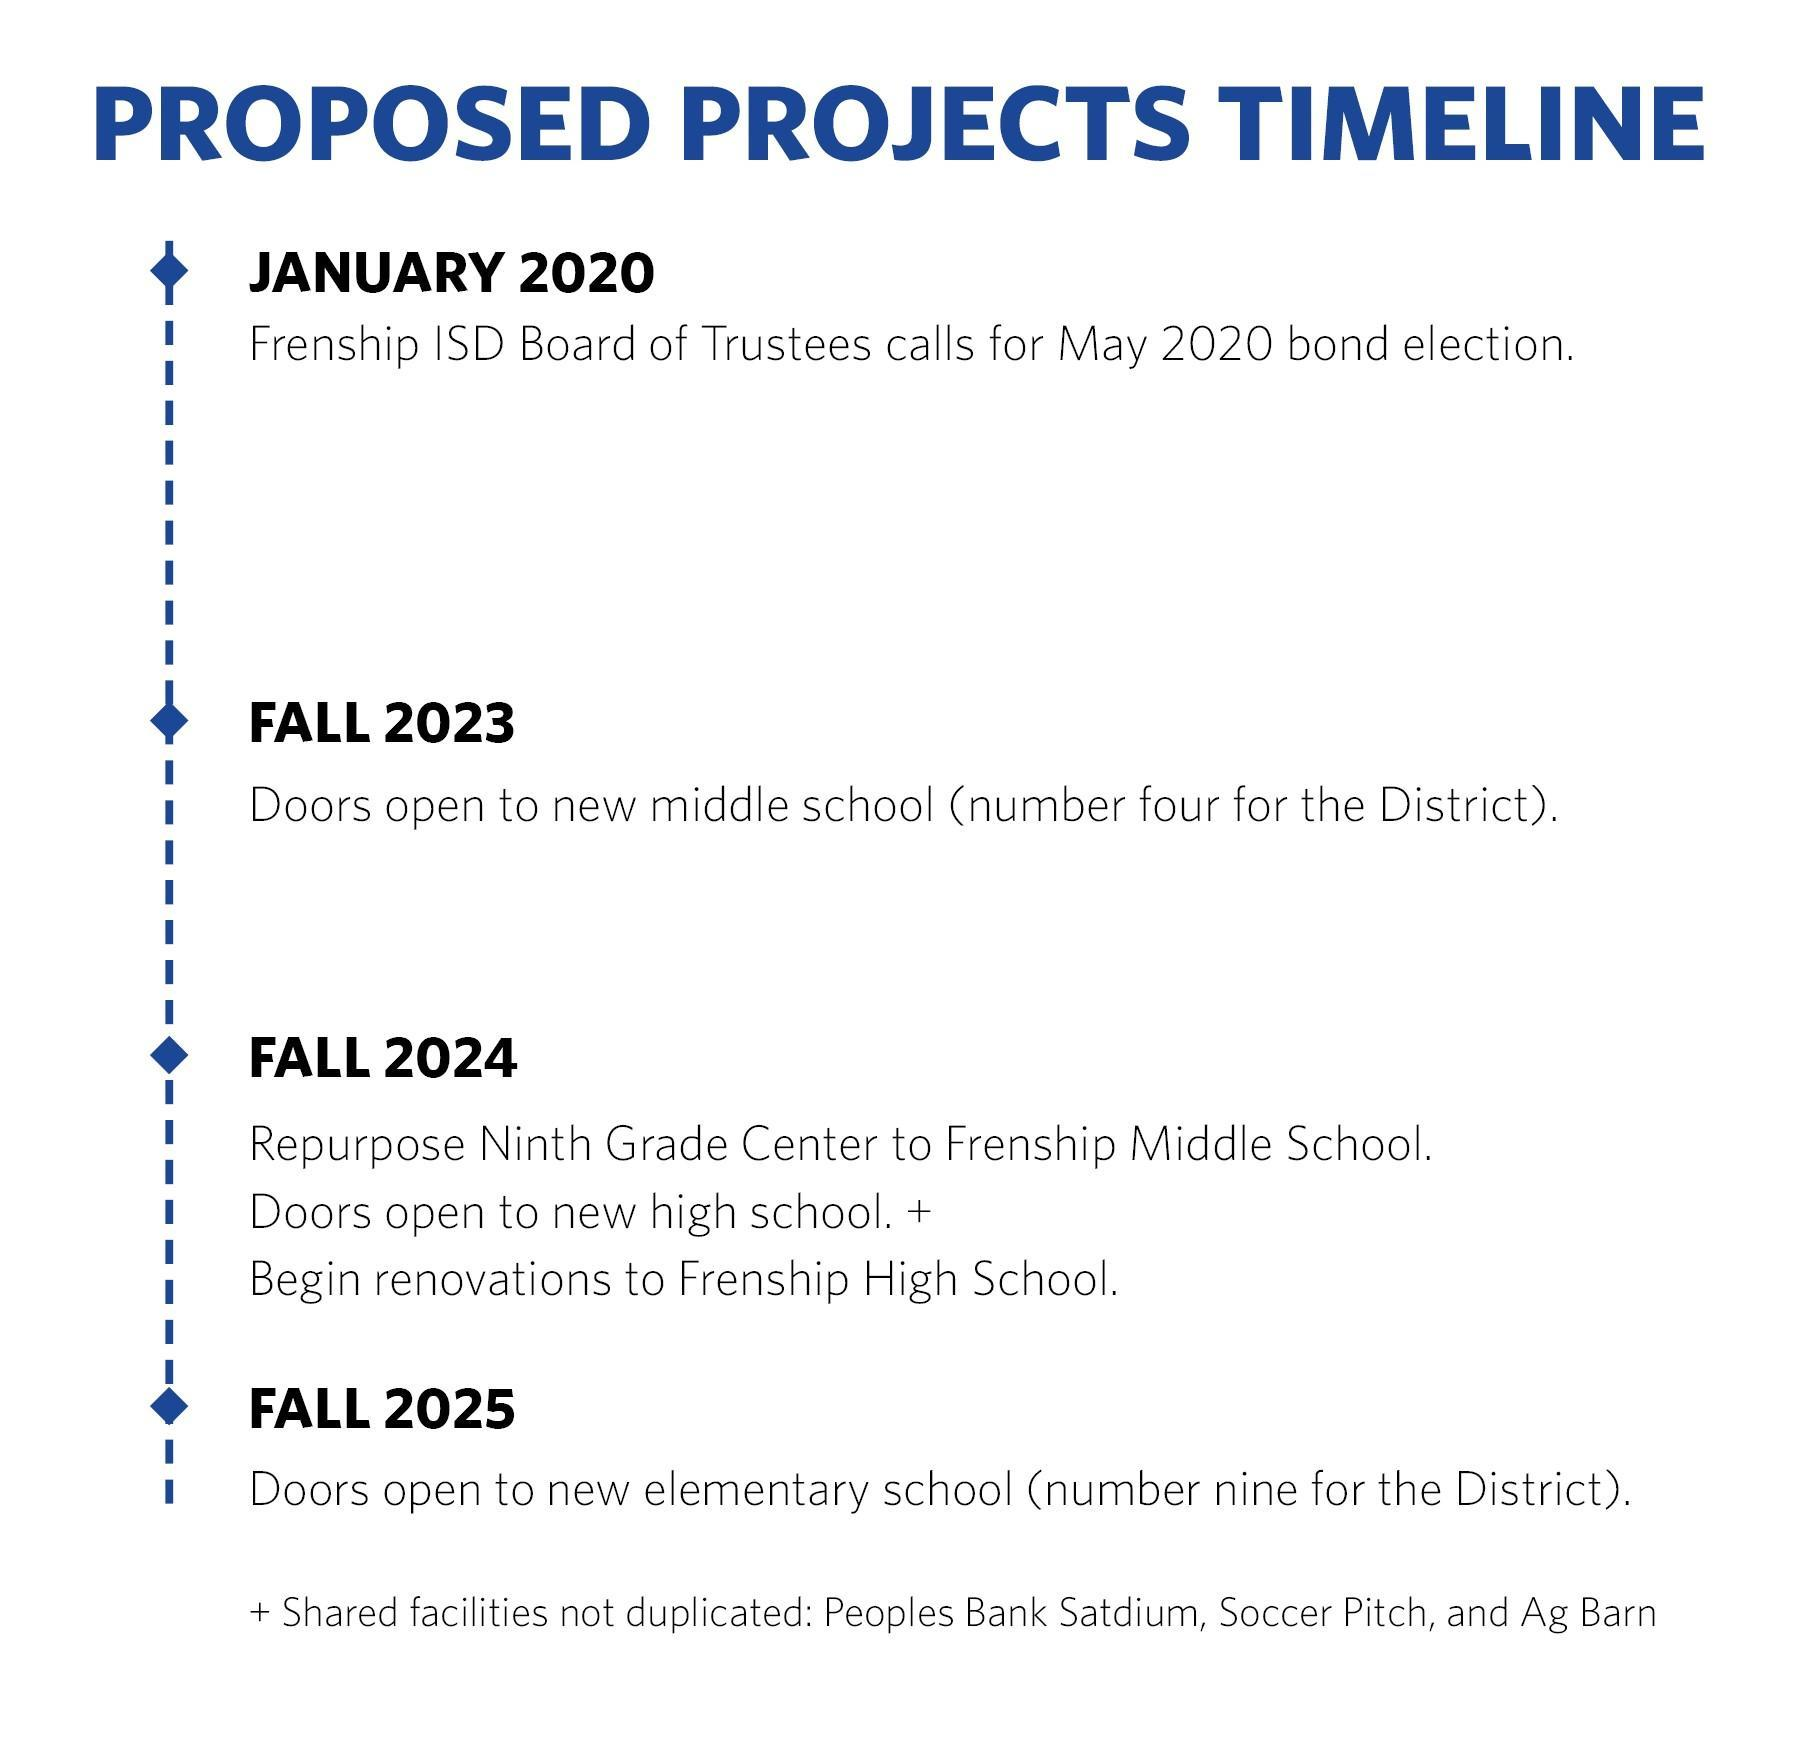 Timeline of projects: January 2020 - Call for May 2 bond election. Fall 2023 - 4th middle school opens. Fall 2024 - repurpose NGC, 2nd high school opens, FHS renovations. Fall 2025 - 9th elementary opens